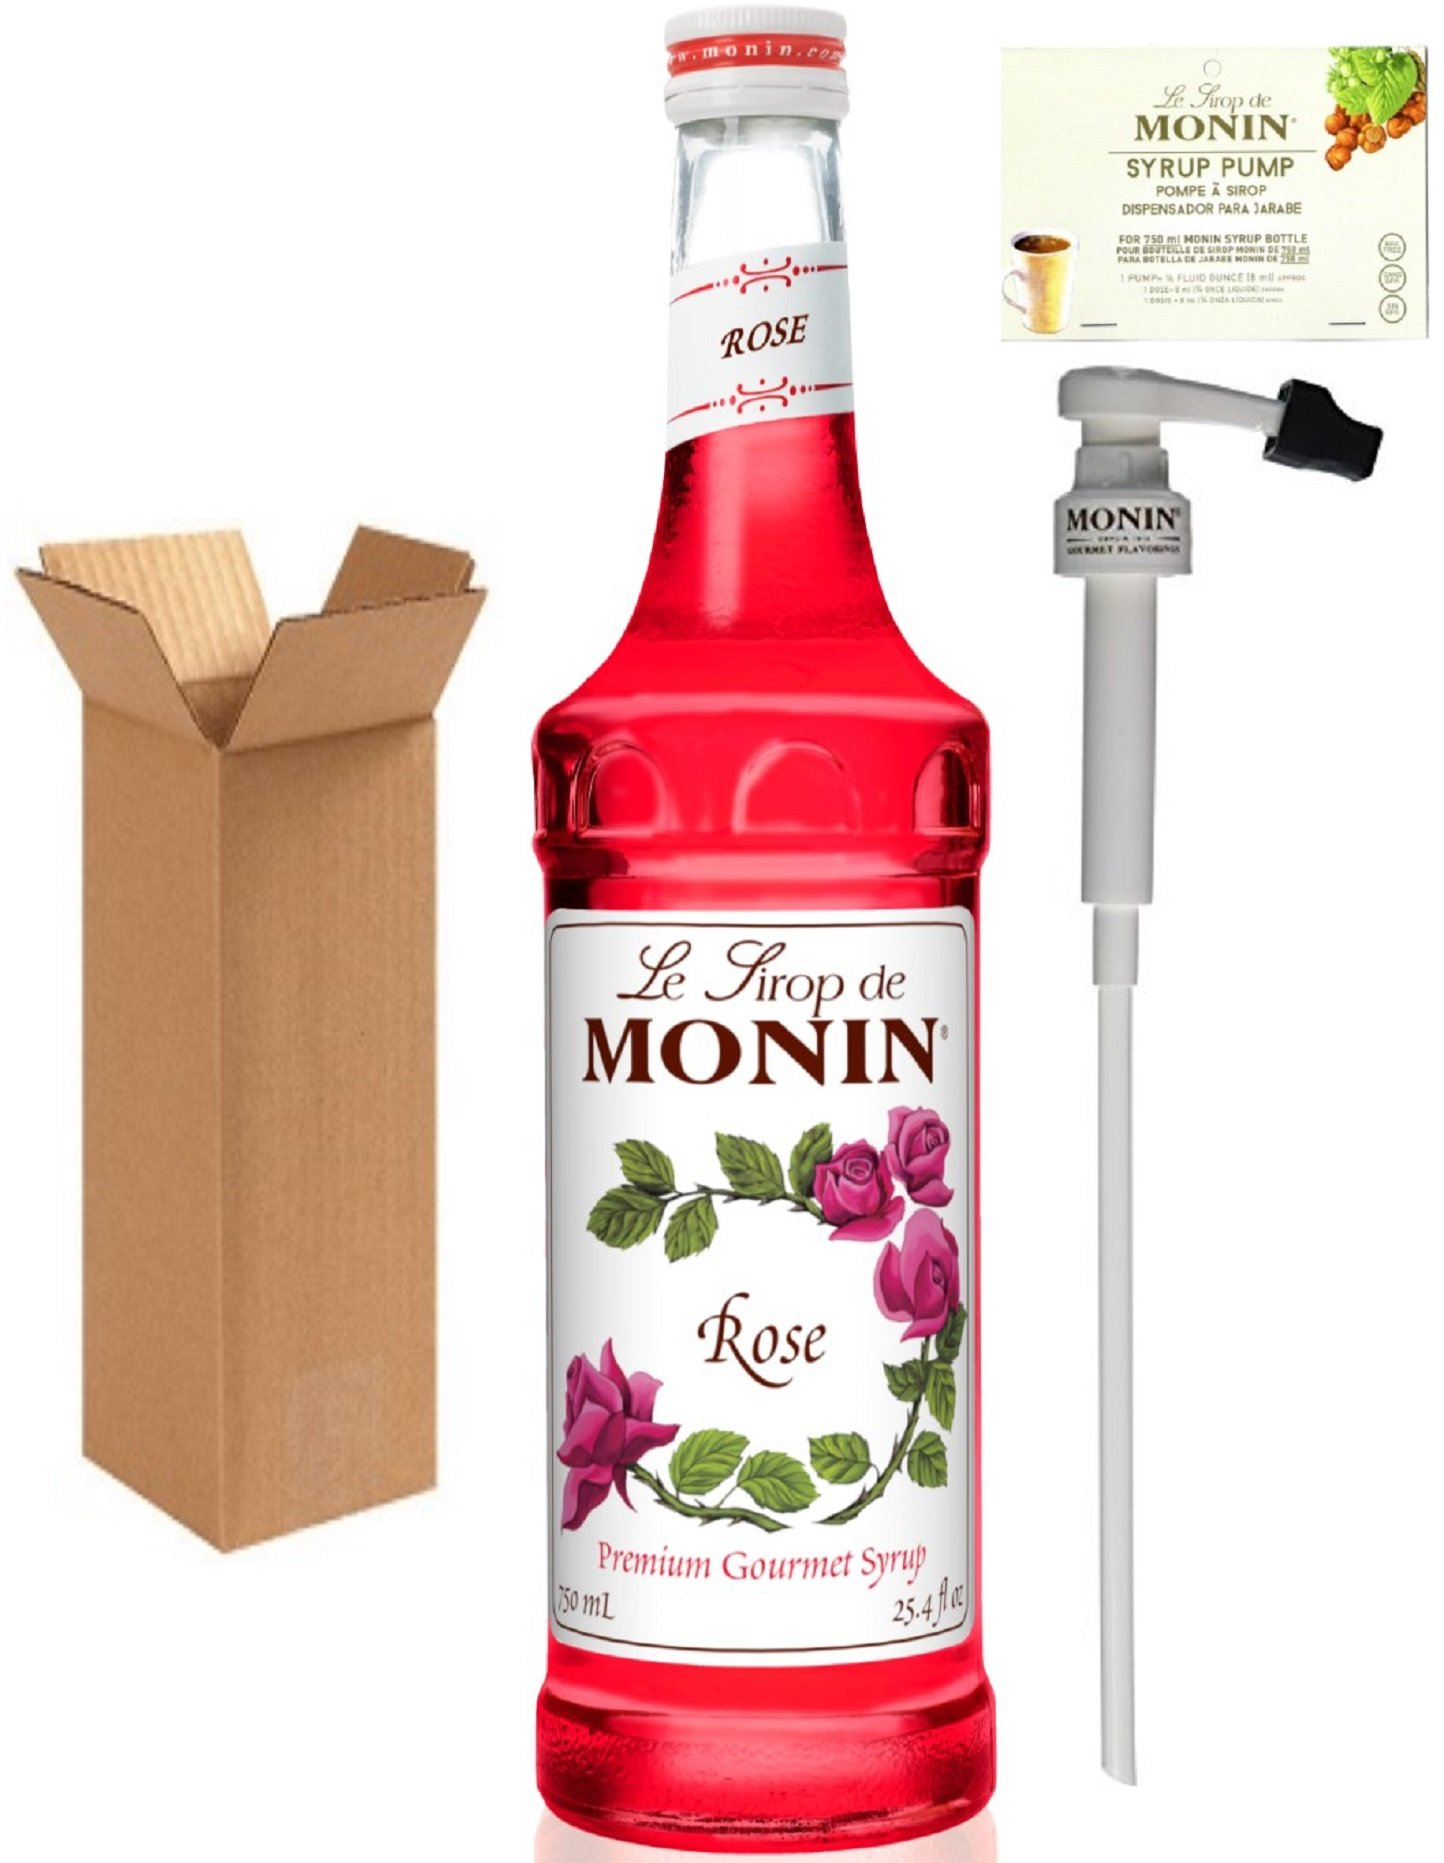 Amazon.com : Monin Rose Syrup, 25.4-Ounce (750 ml) Glass Bottle with Monin BPA Free Pump. Boxed. : Grocery & Gourmet Food